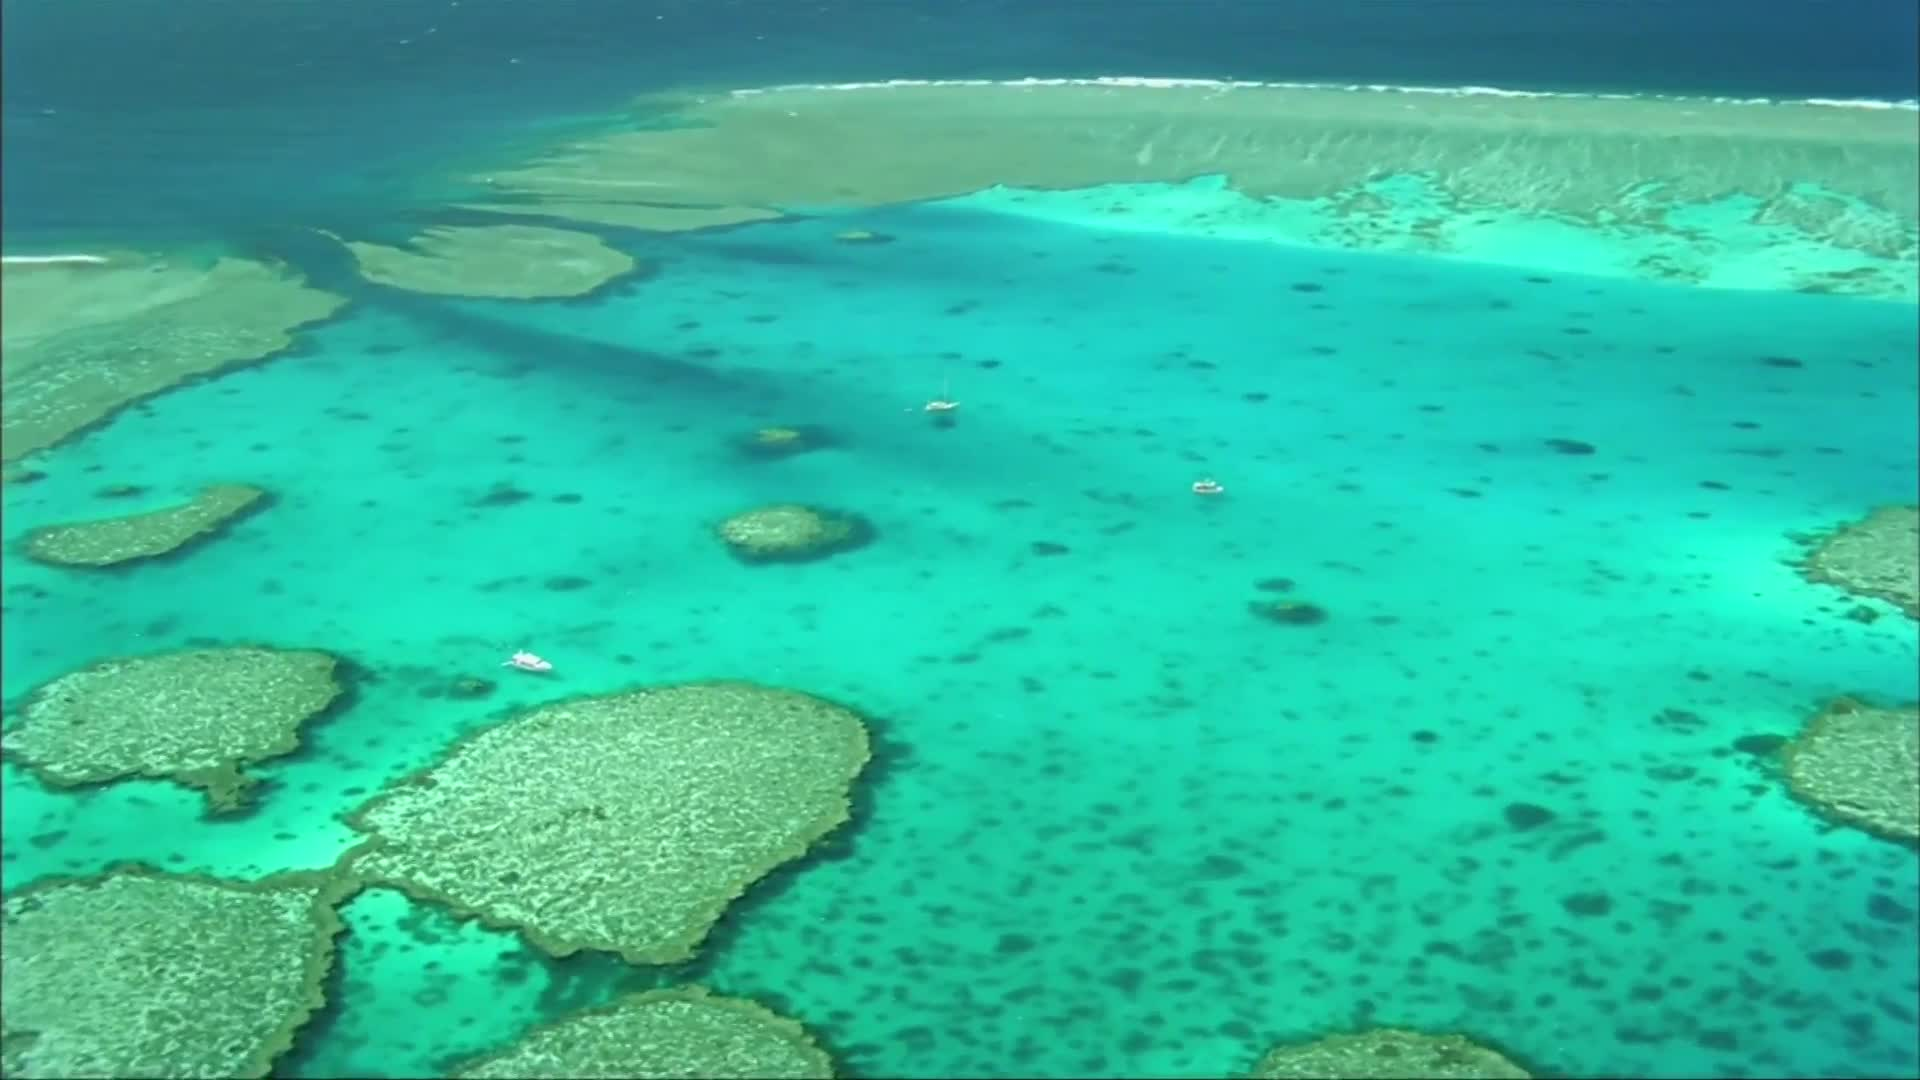 Some coral reefs thriving, says report